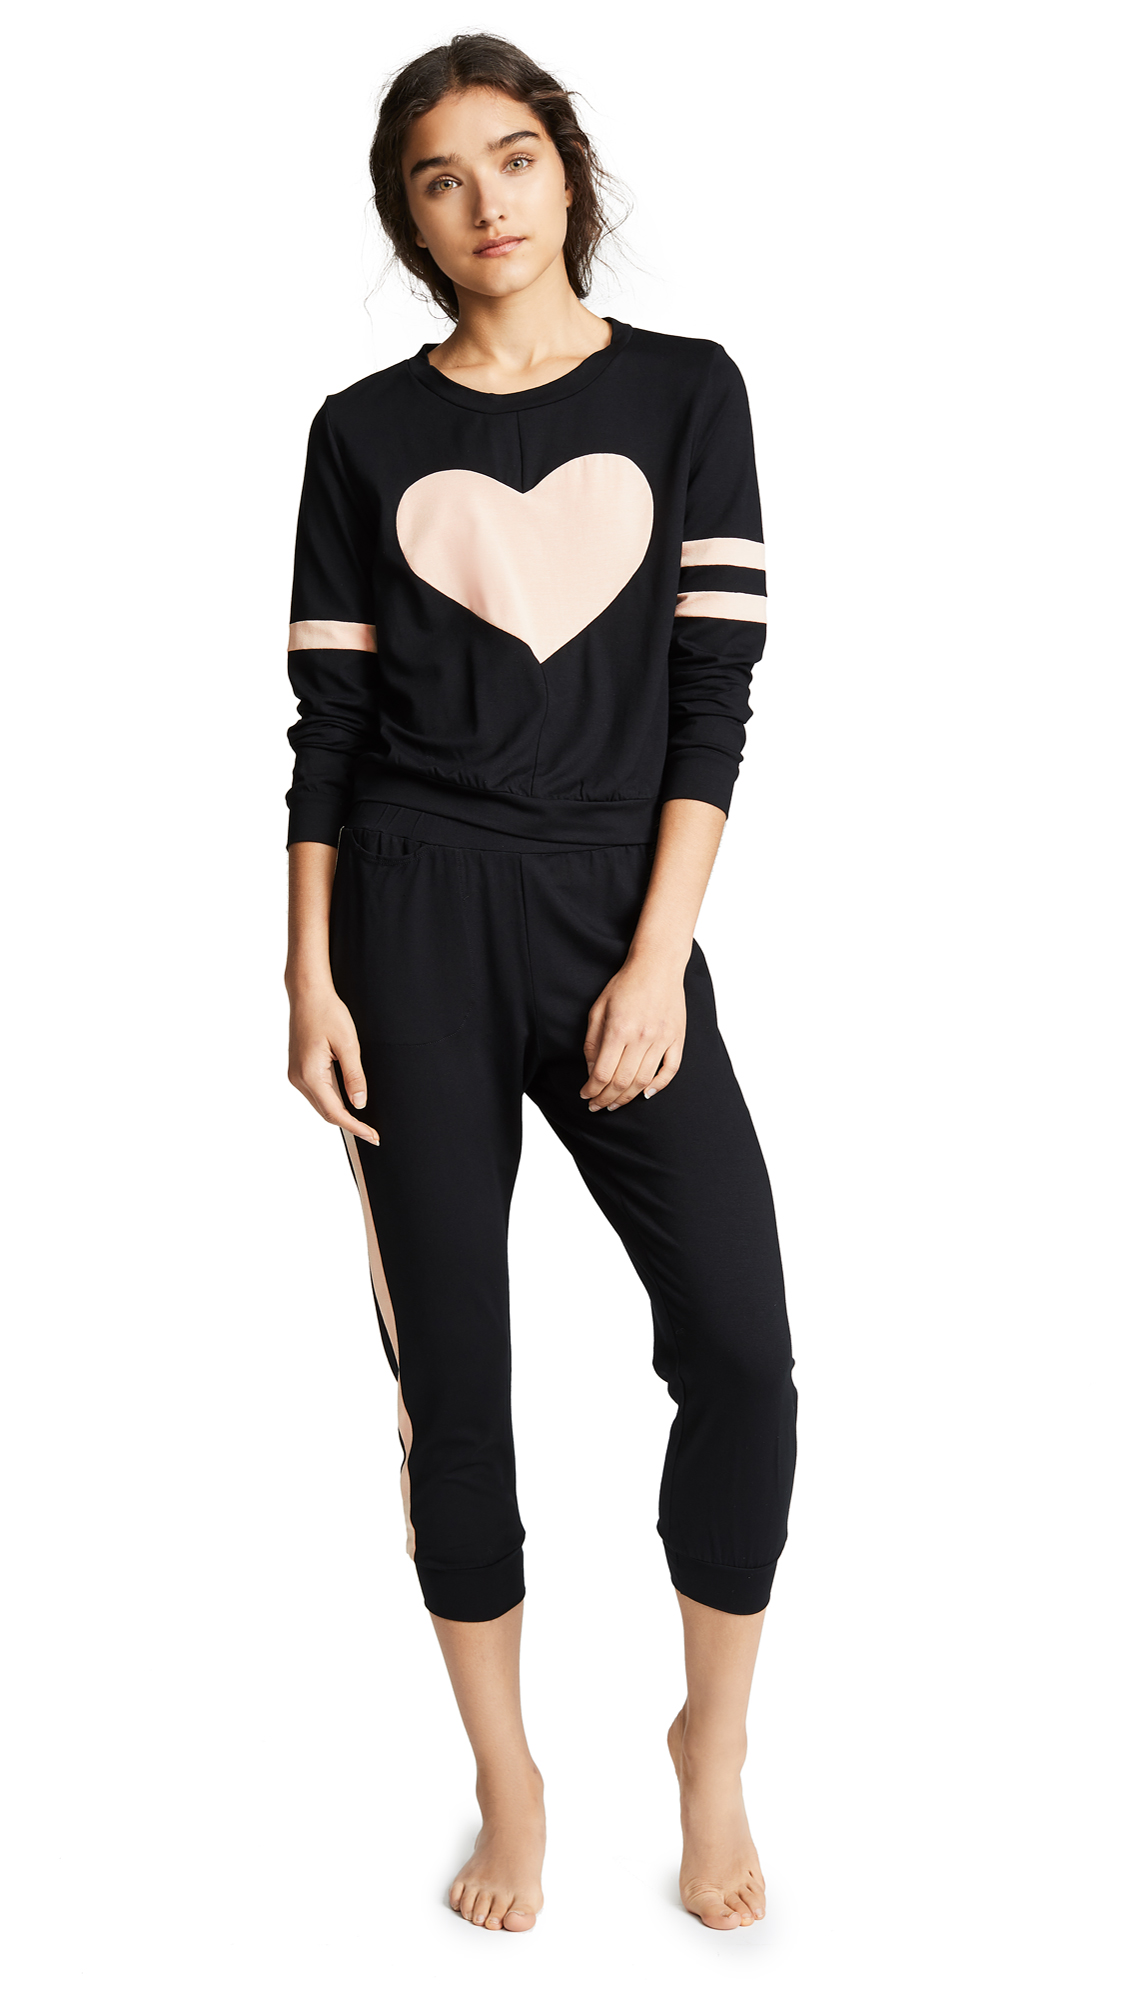 ONLY HEARTS Love Story Pj Set in Black/Nude